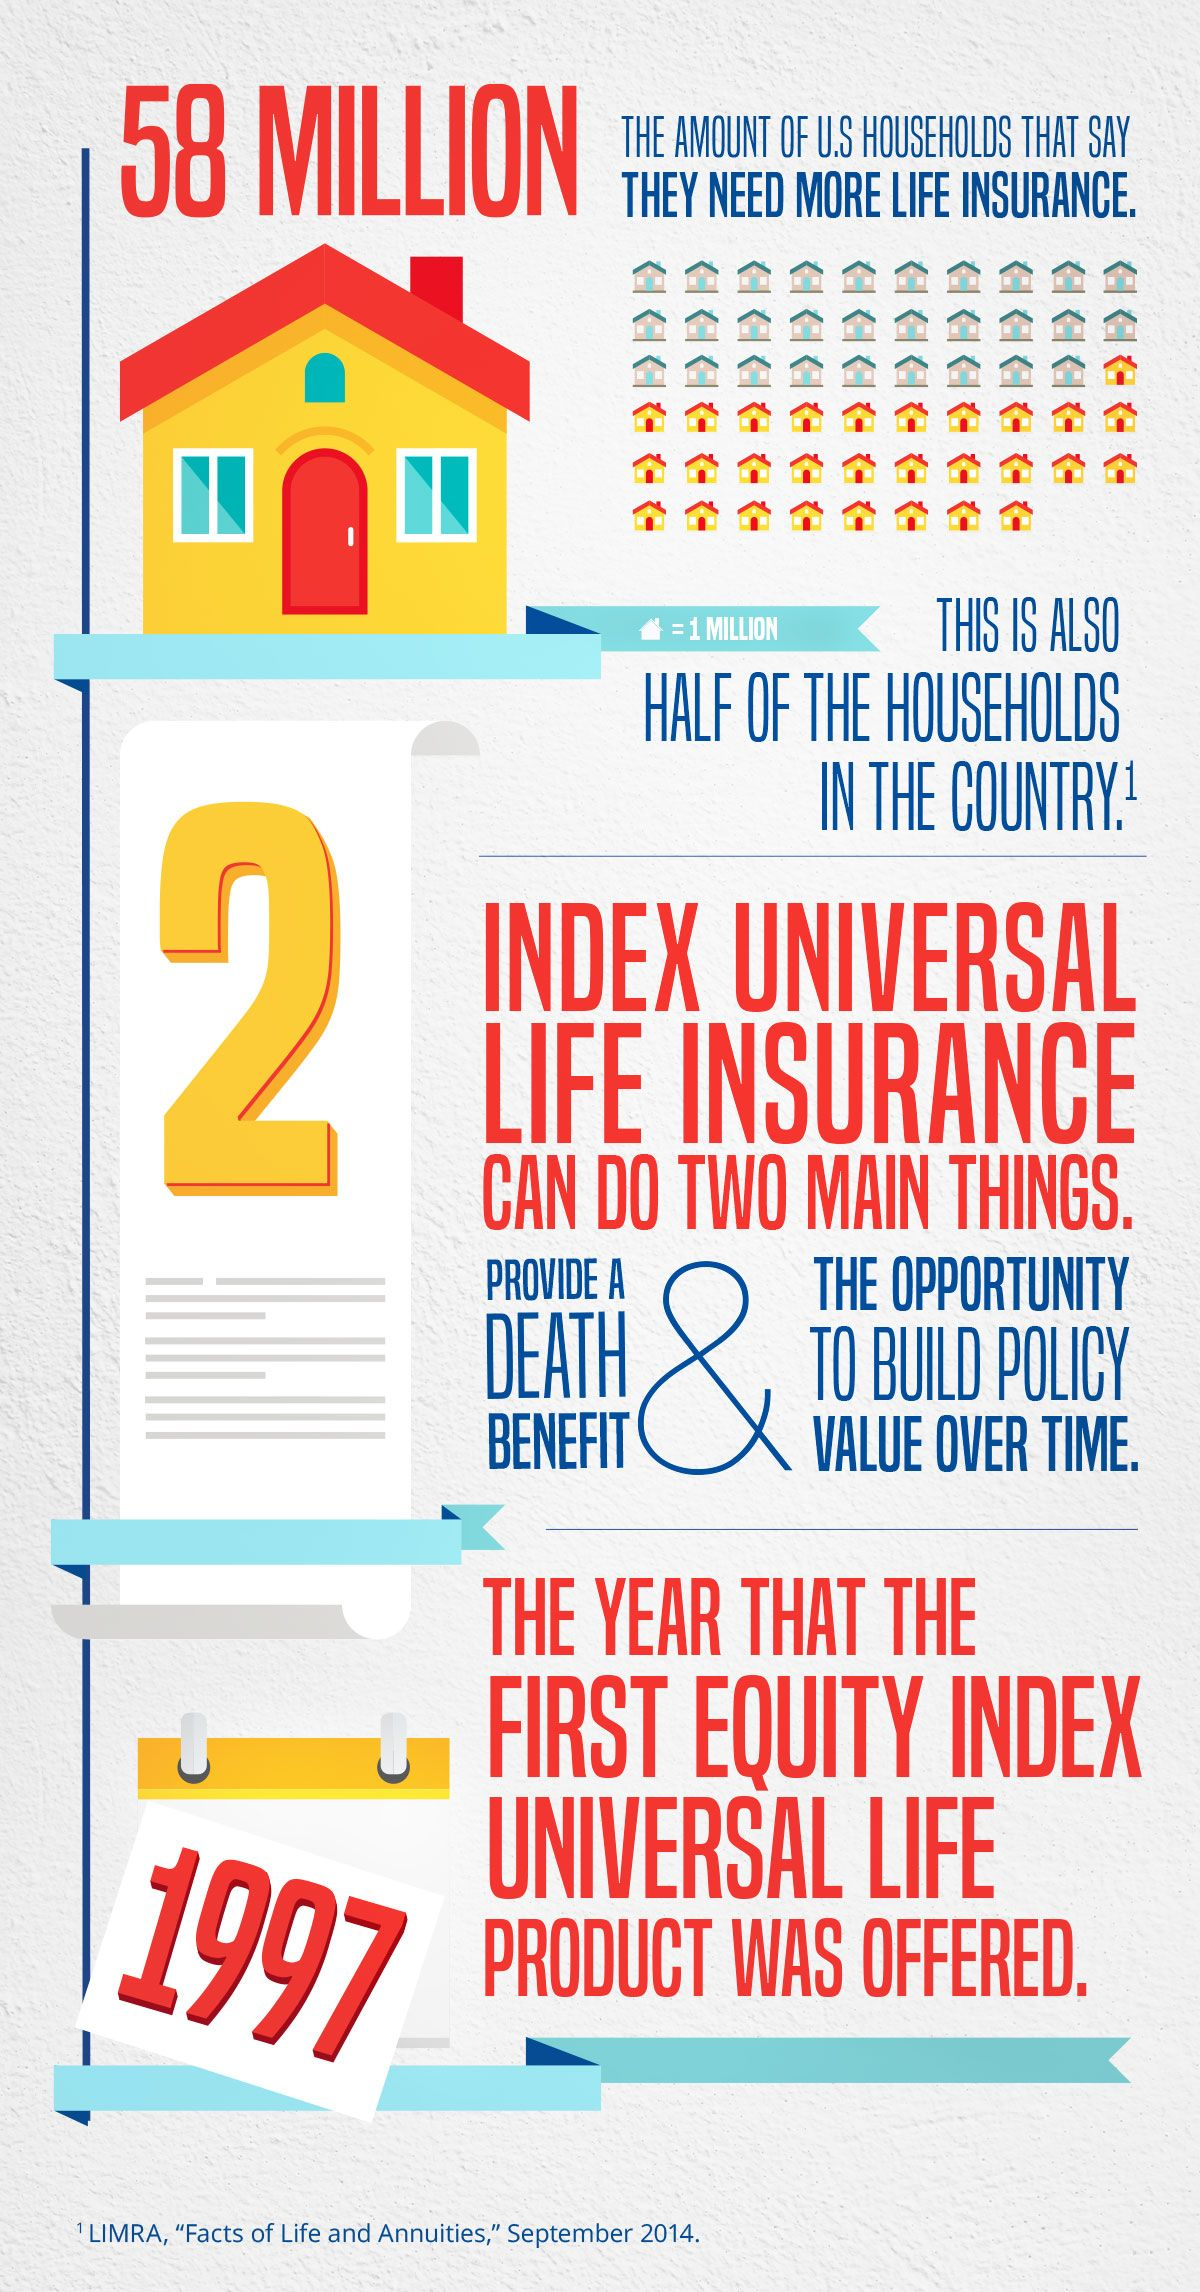 Over The Last Few Decades Index Universal Life Insurance Has